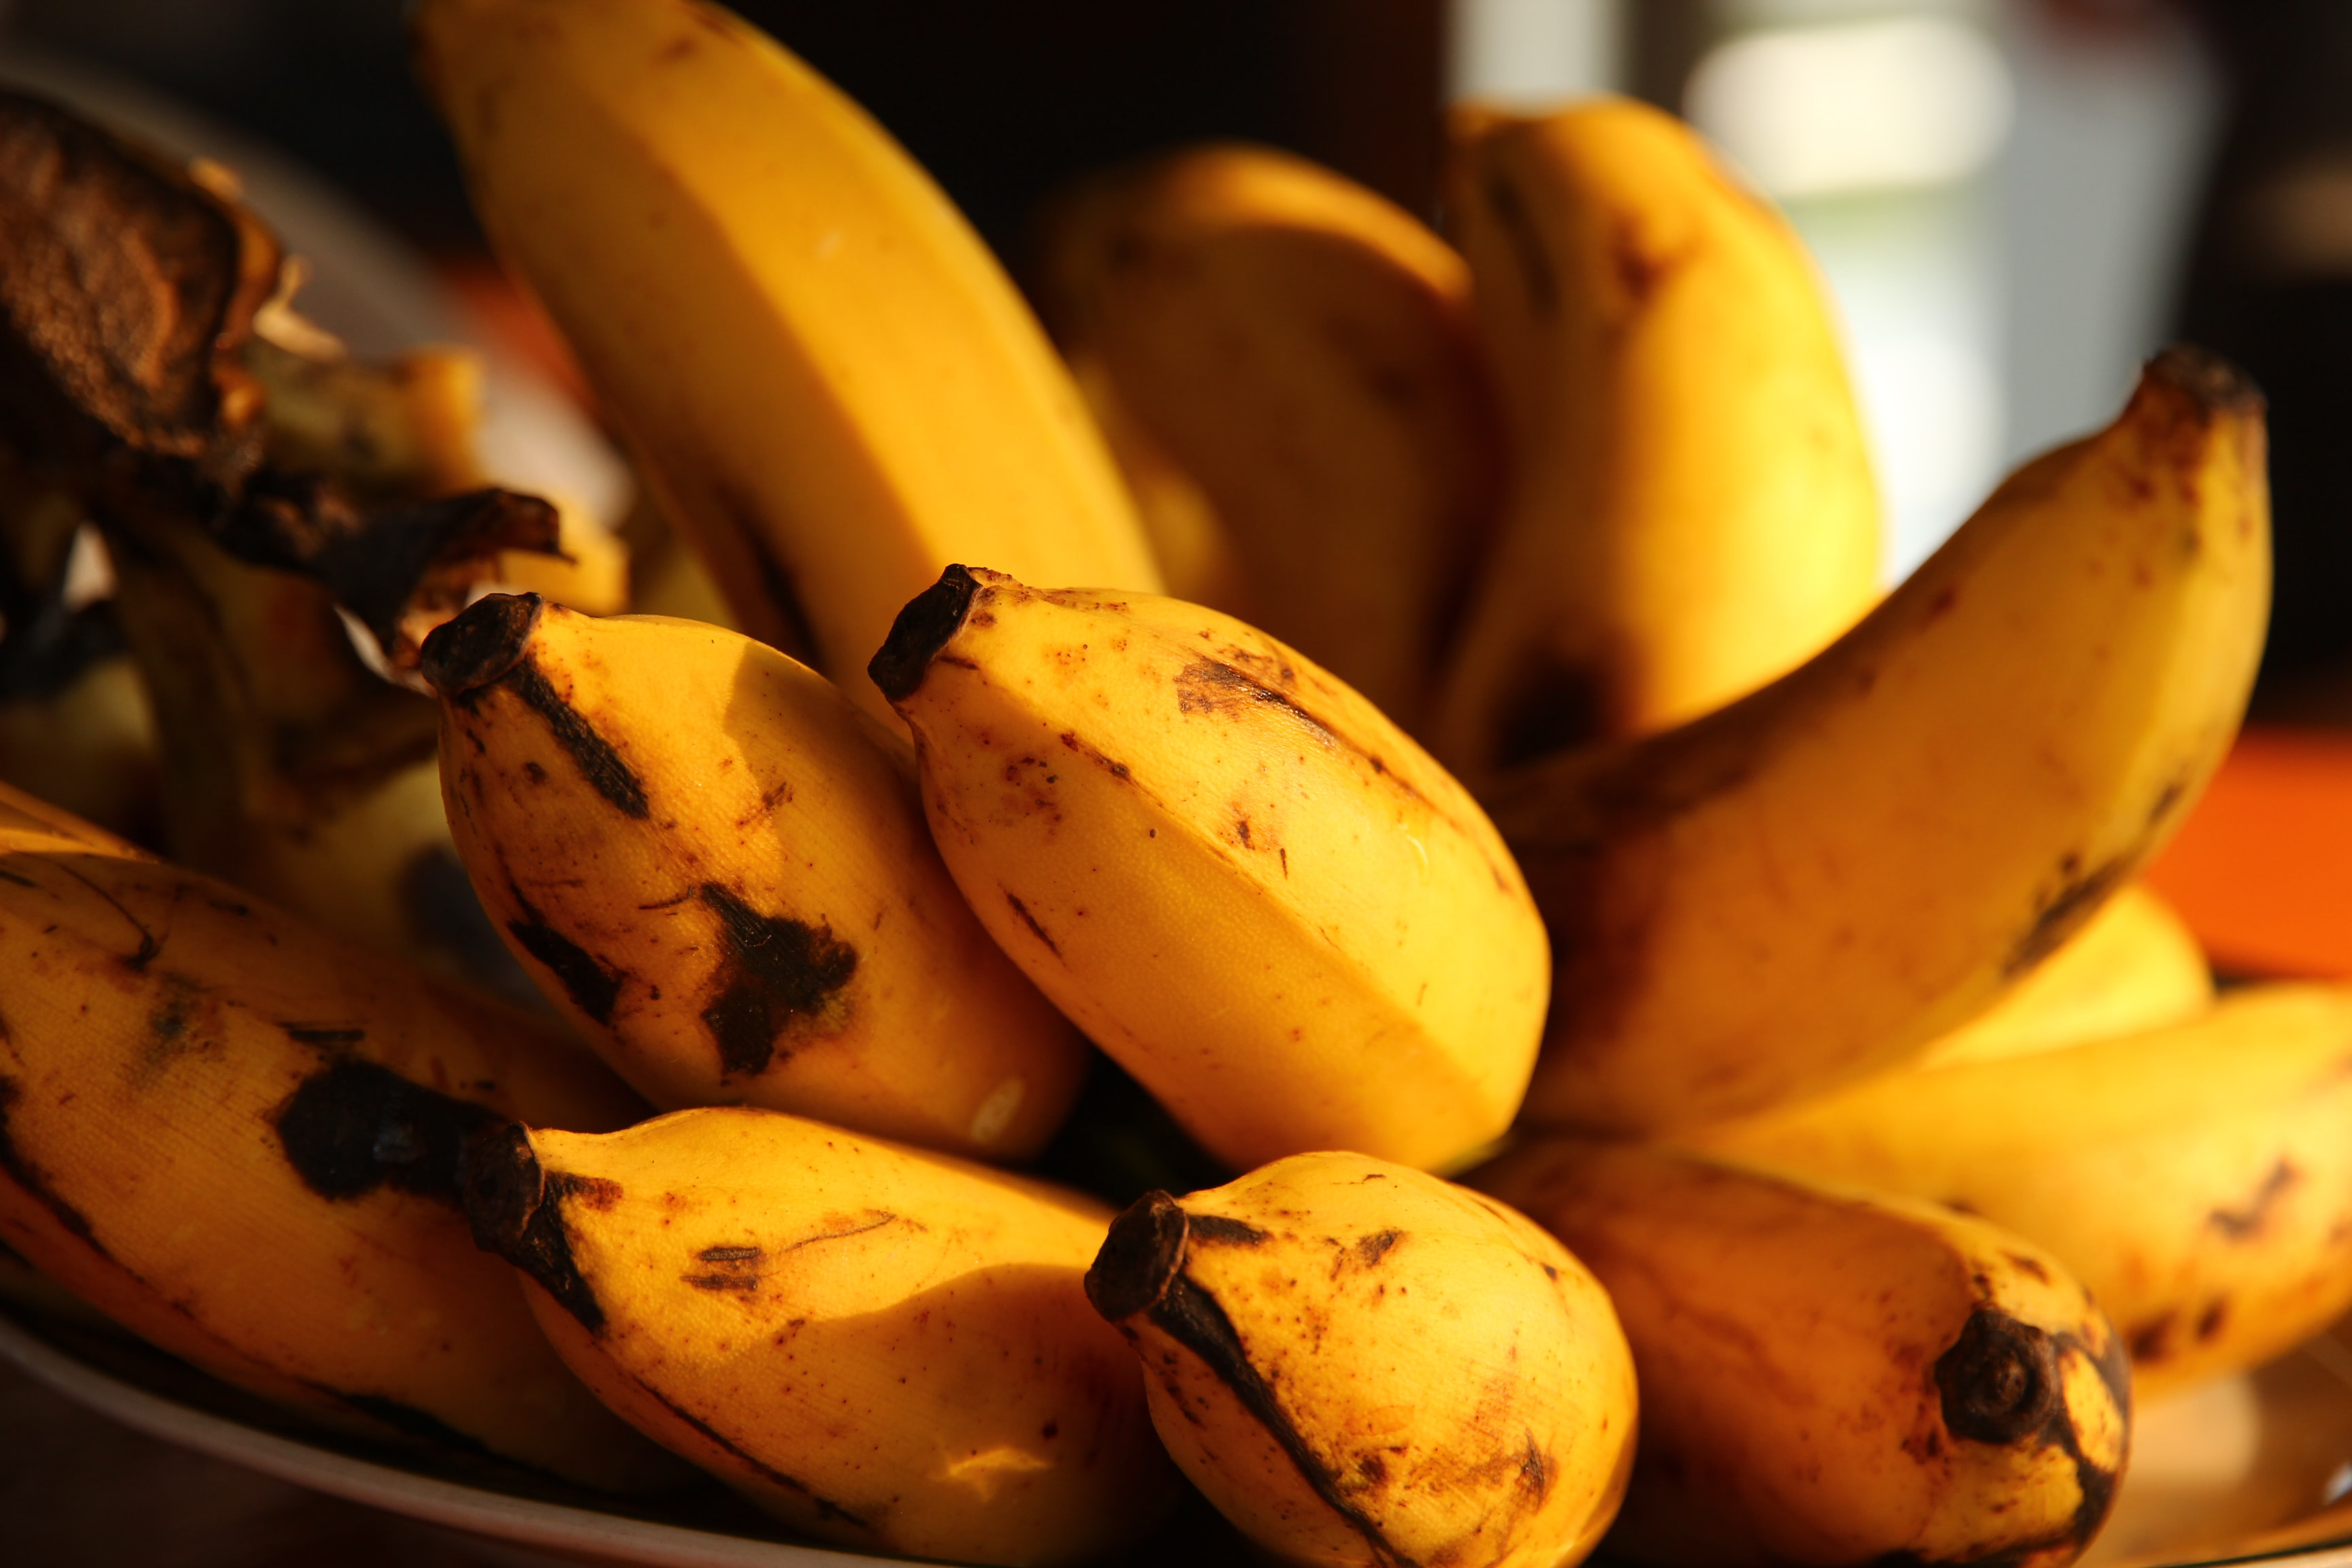 selective focus photography of ripped bananas